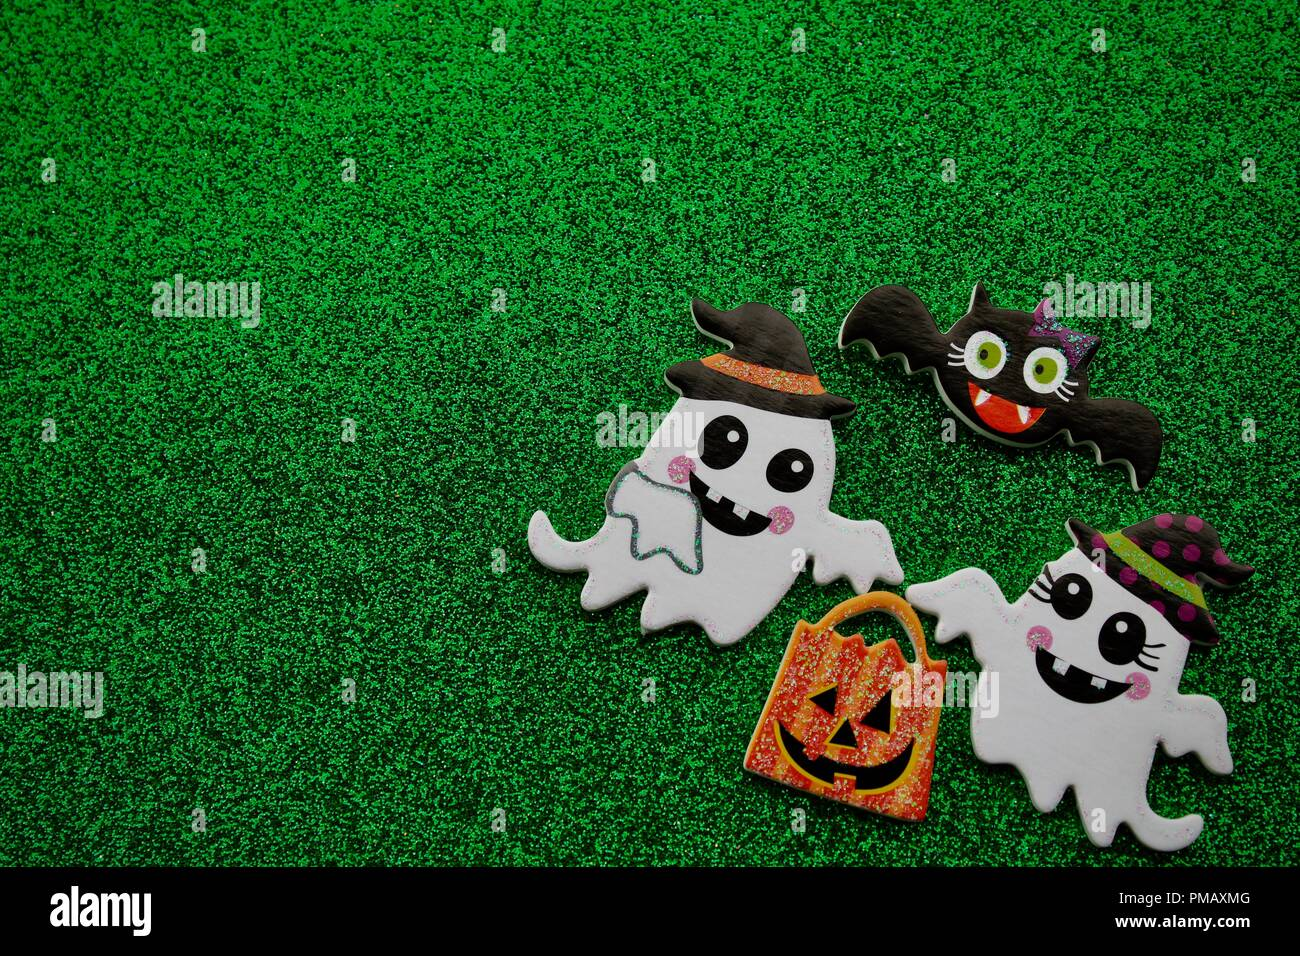 two ghosts carrying a pumpkin trick or treat bag with a black bat flying above on a green background - Stock Image